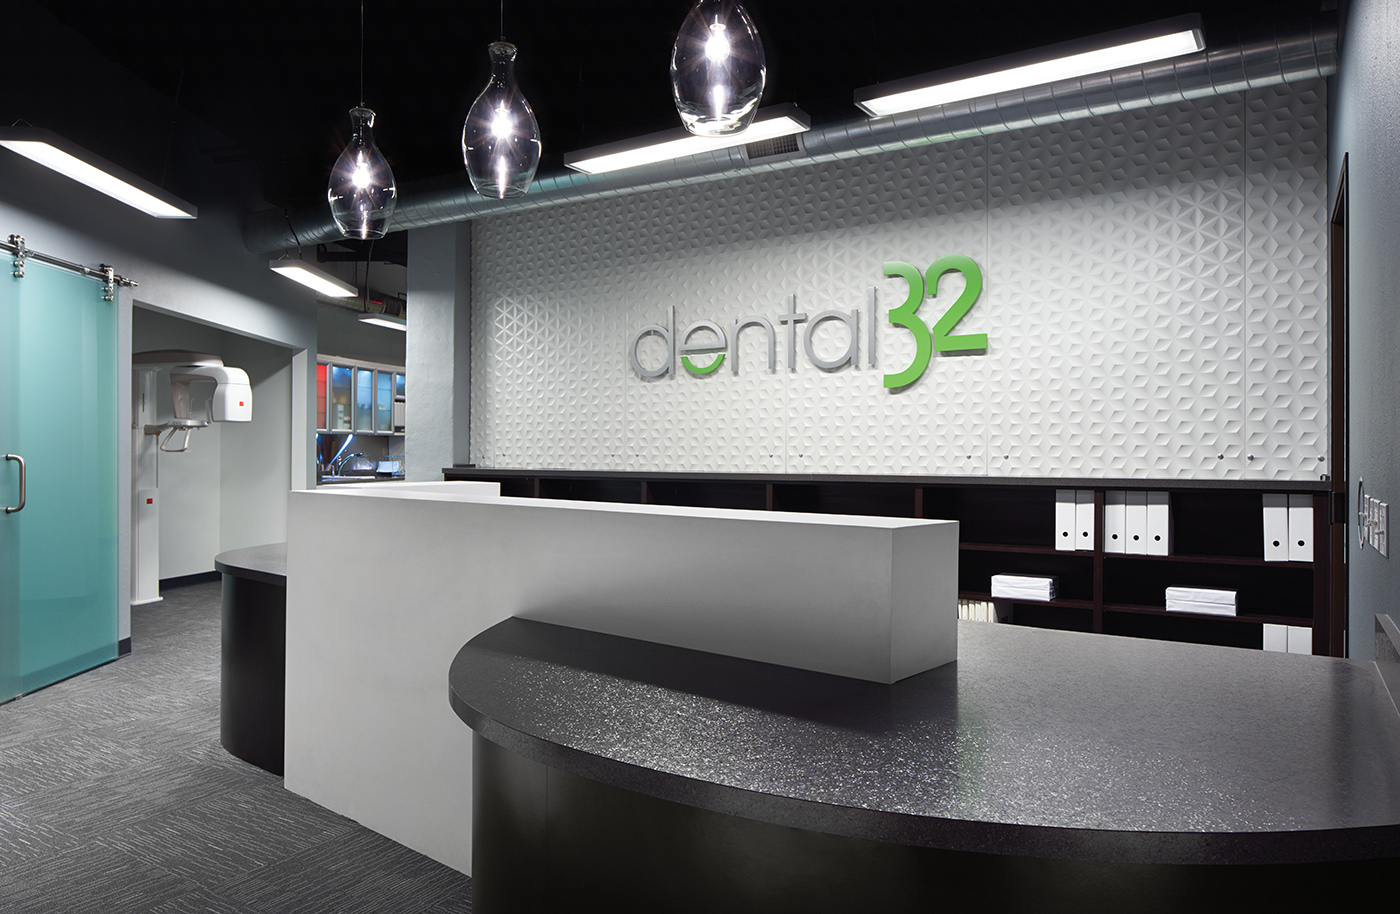 the incisal edge design awards 2018 entry forms